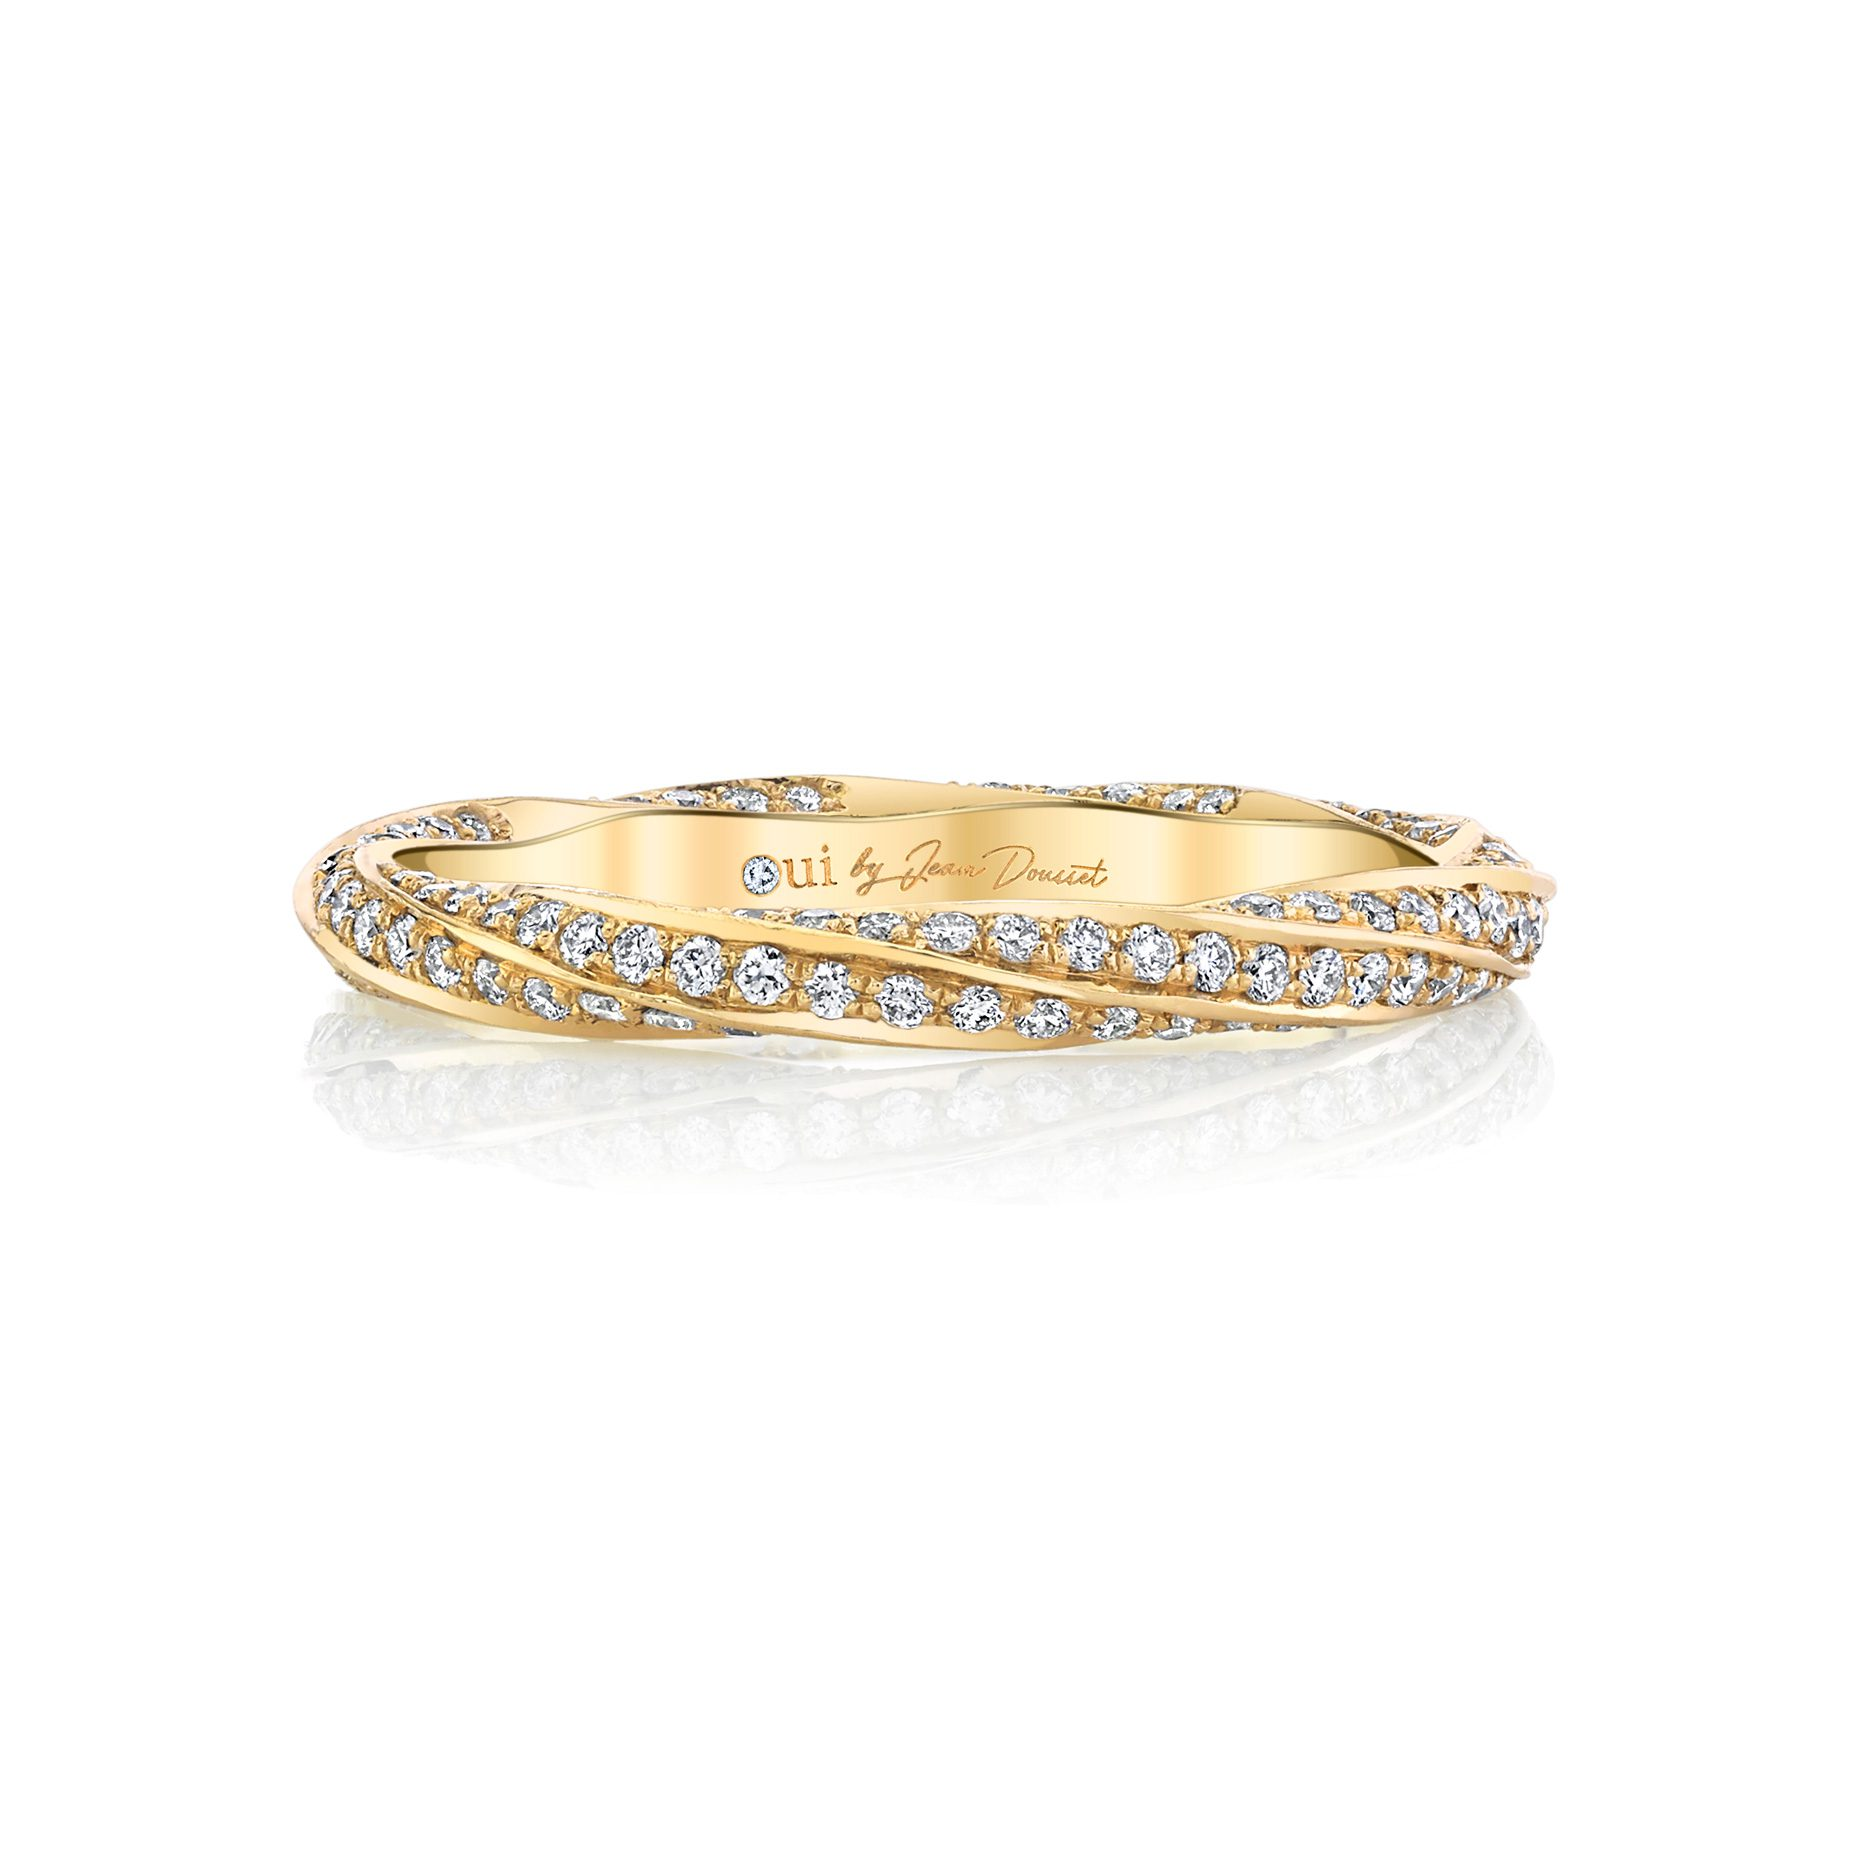 Camille Women's Wedding Band with a diamond pavé twist in 18k Yellow Gold Front View by Oui by Jean Dousset